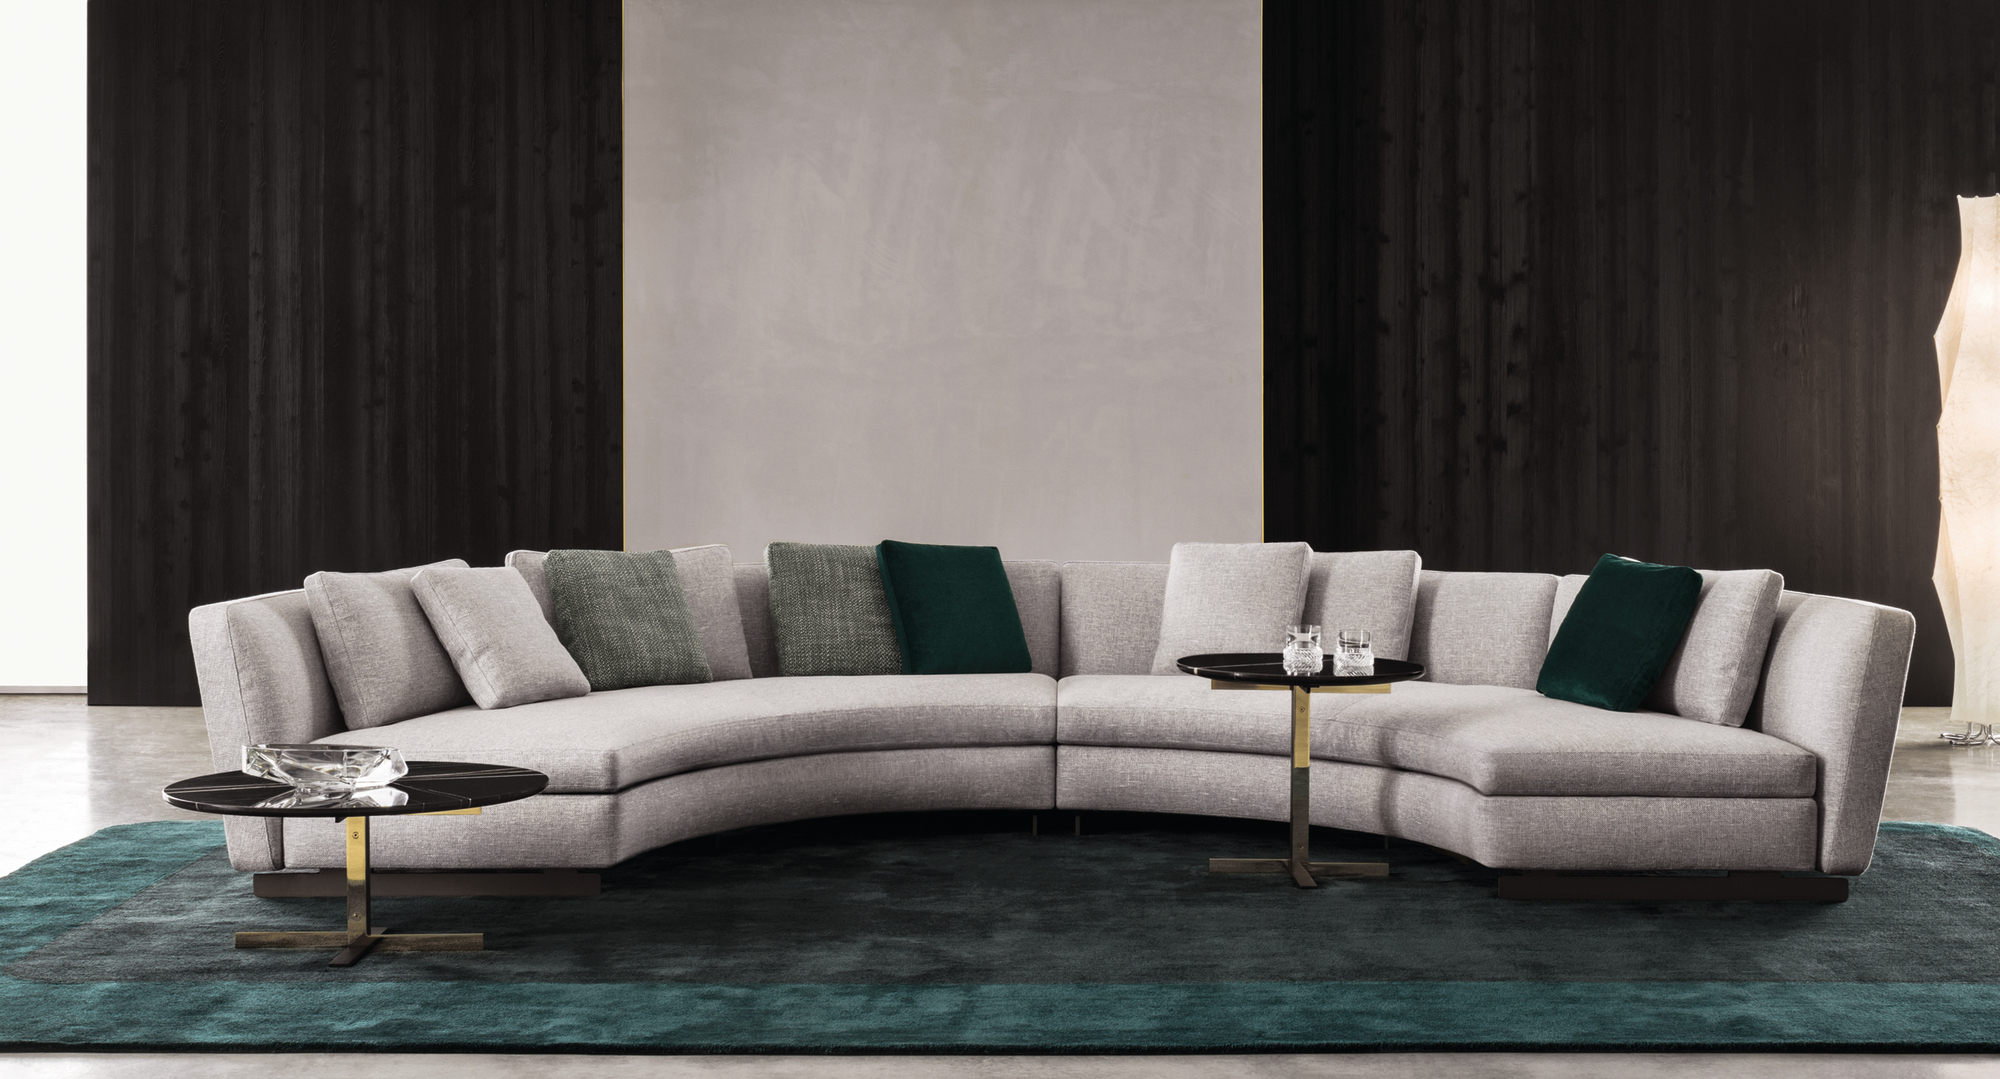 Seymour seating system by rodolfo dordoni for minotti sohomod blog Sofa minotti preise